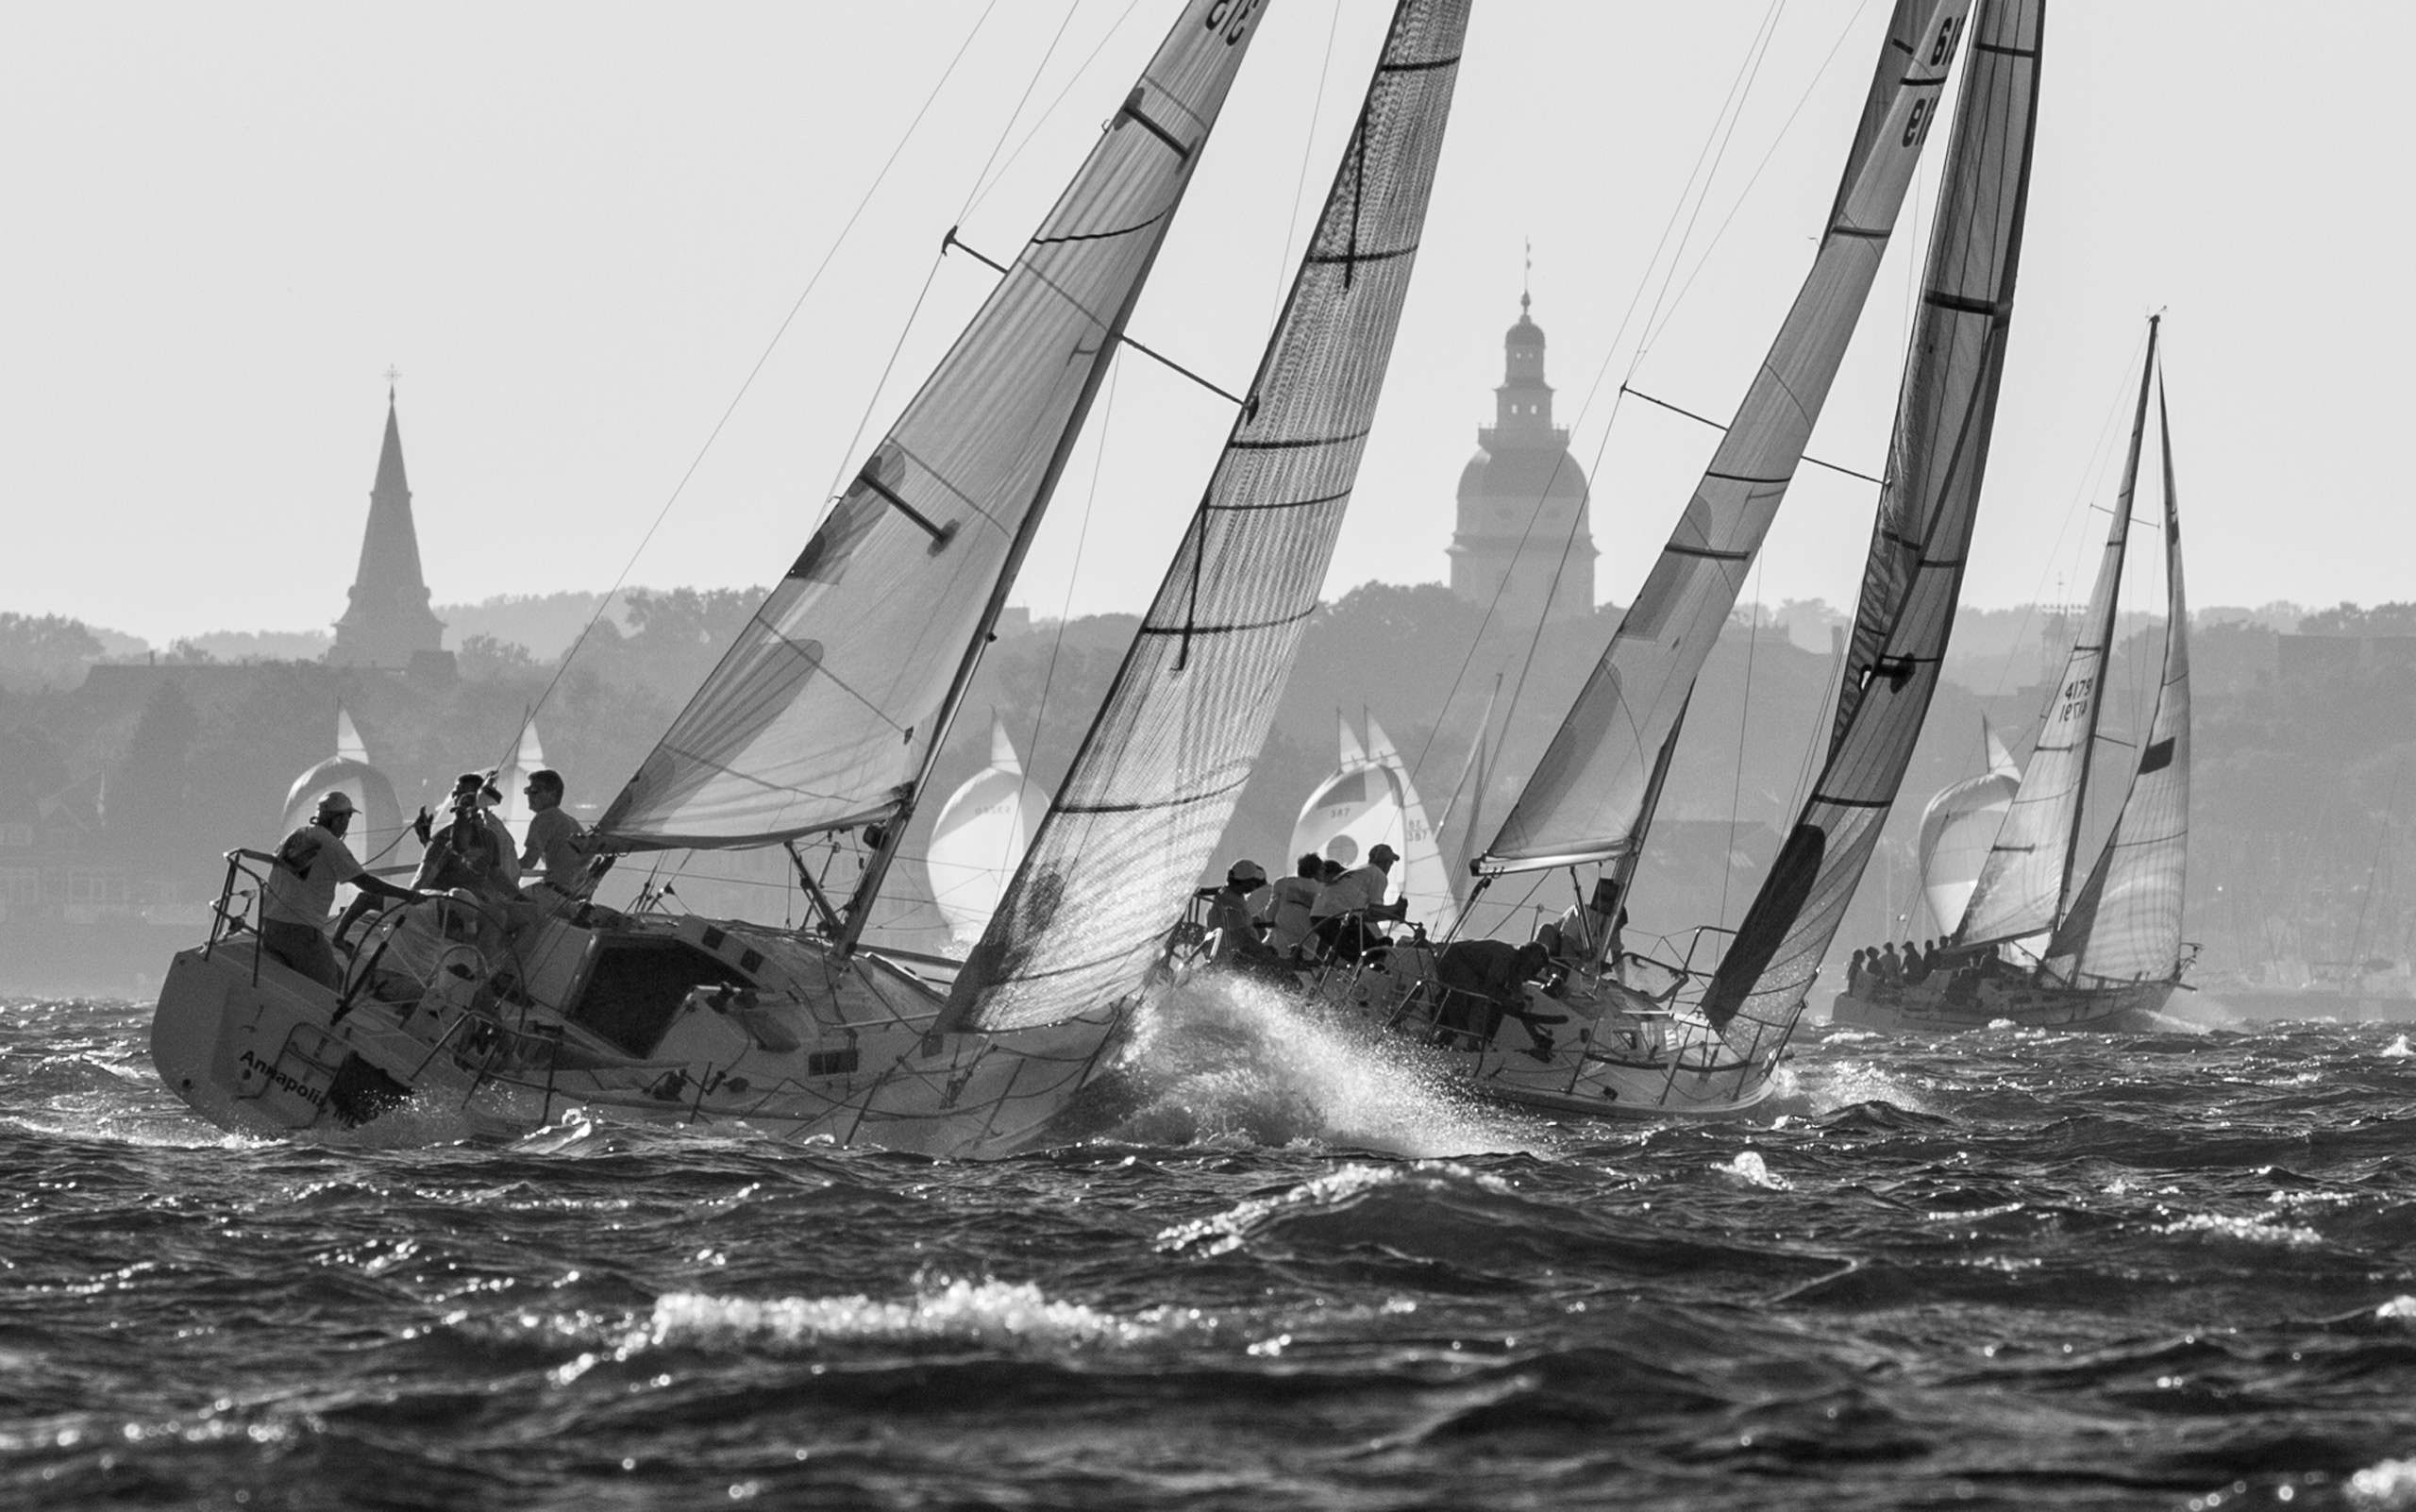 PORTFOLIO - Sailing - Chesapeake #12